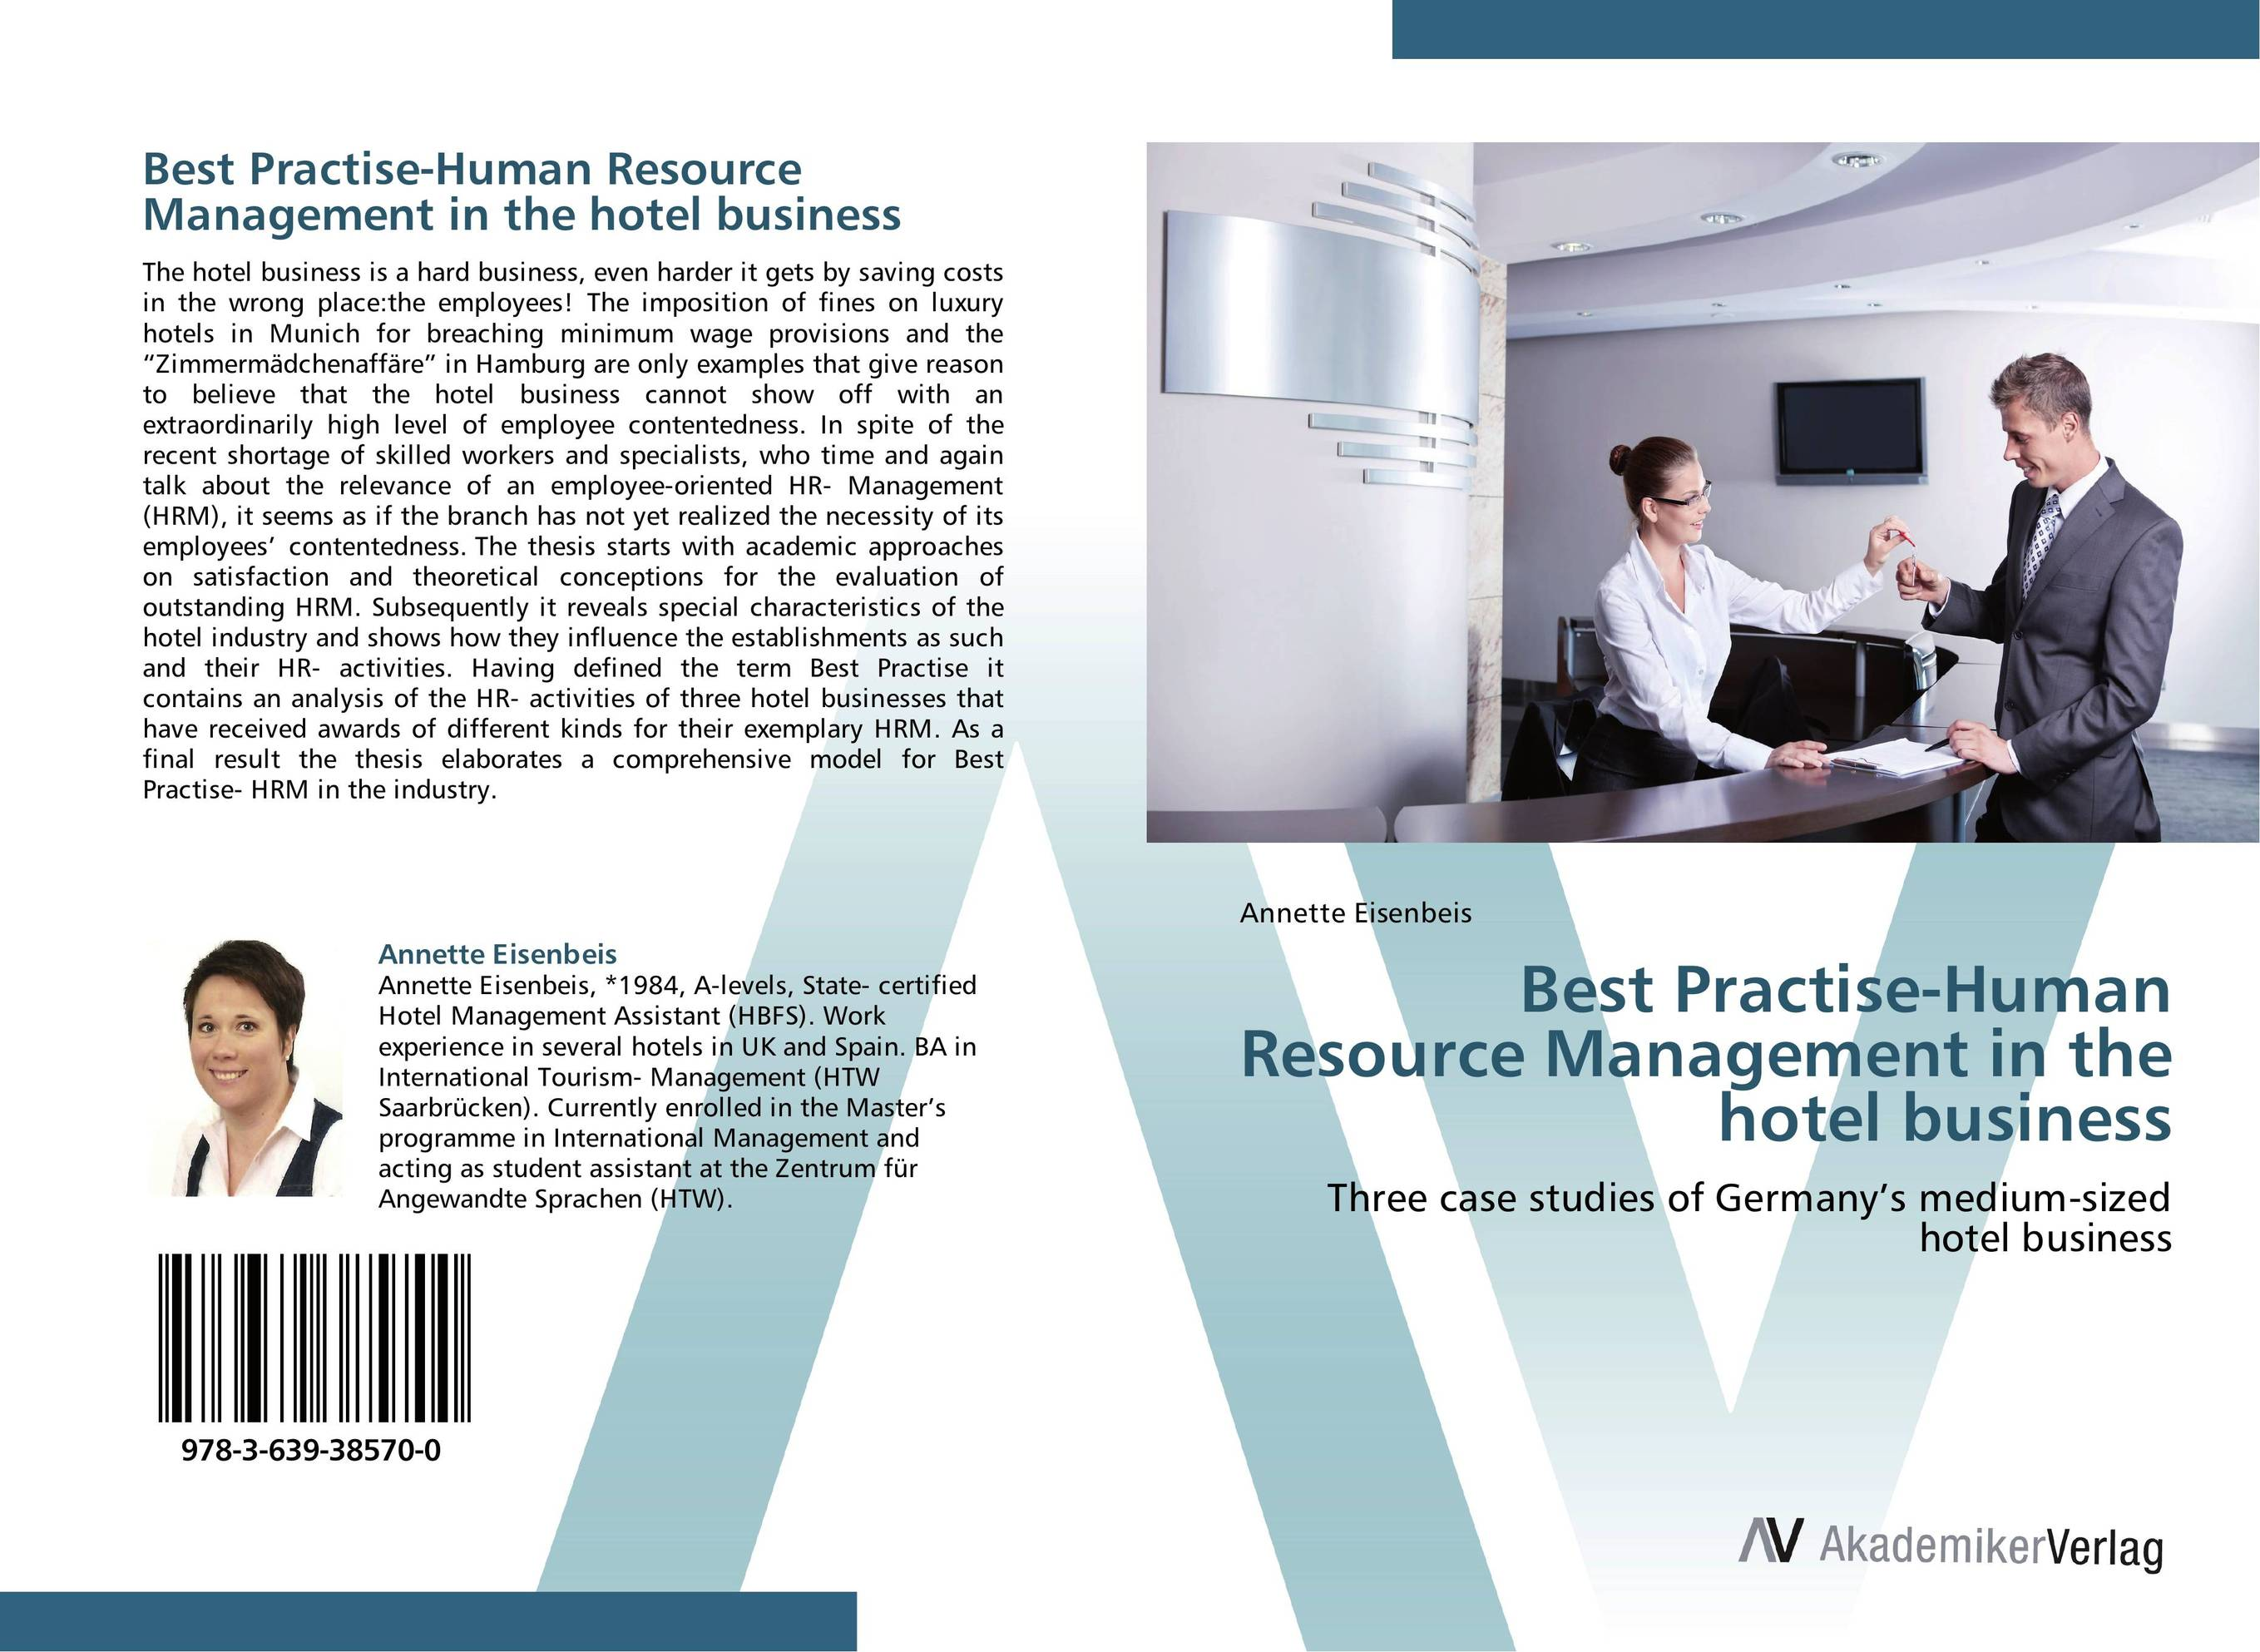 Best Practise-Human Resource Management in the hotel business